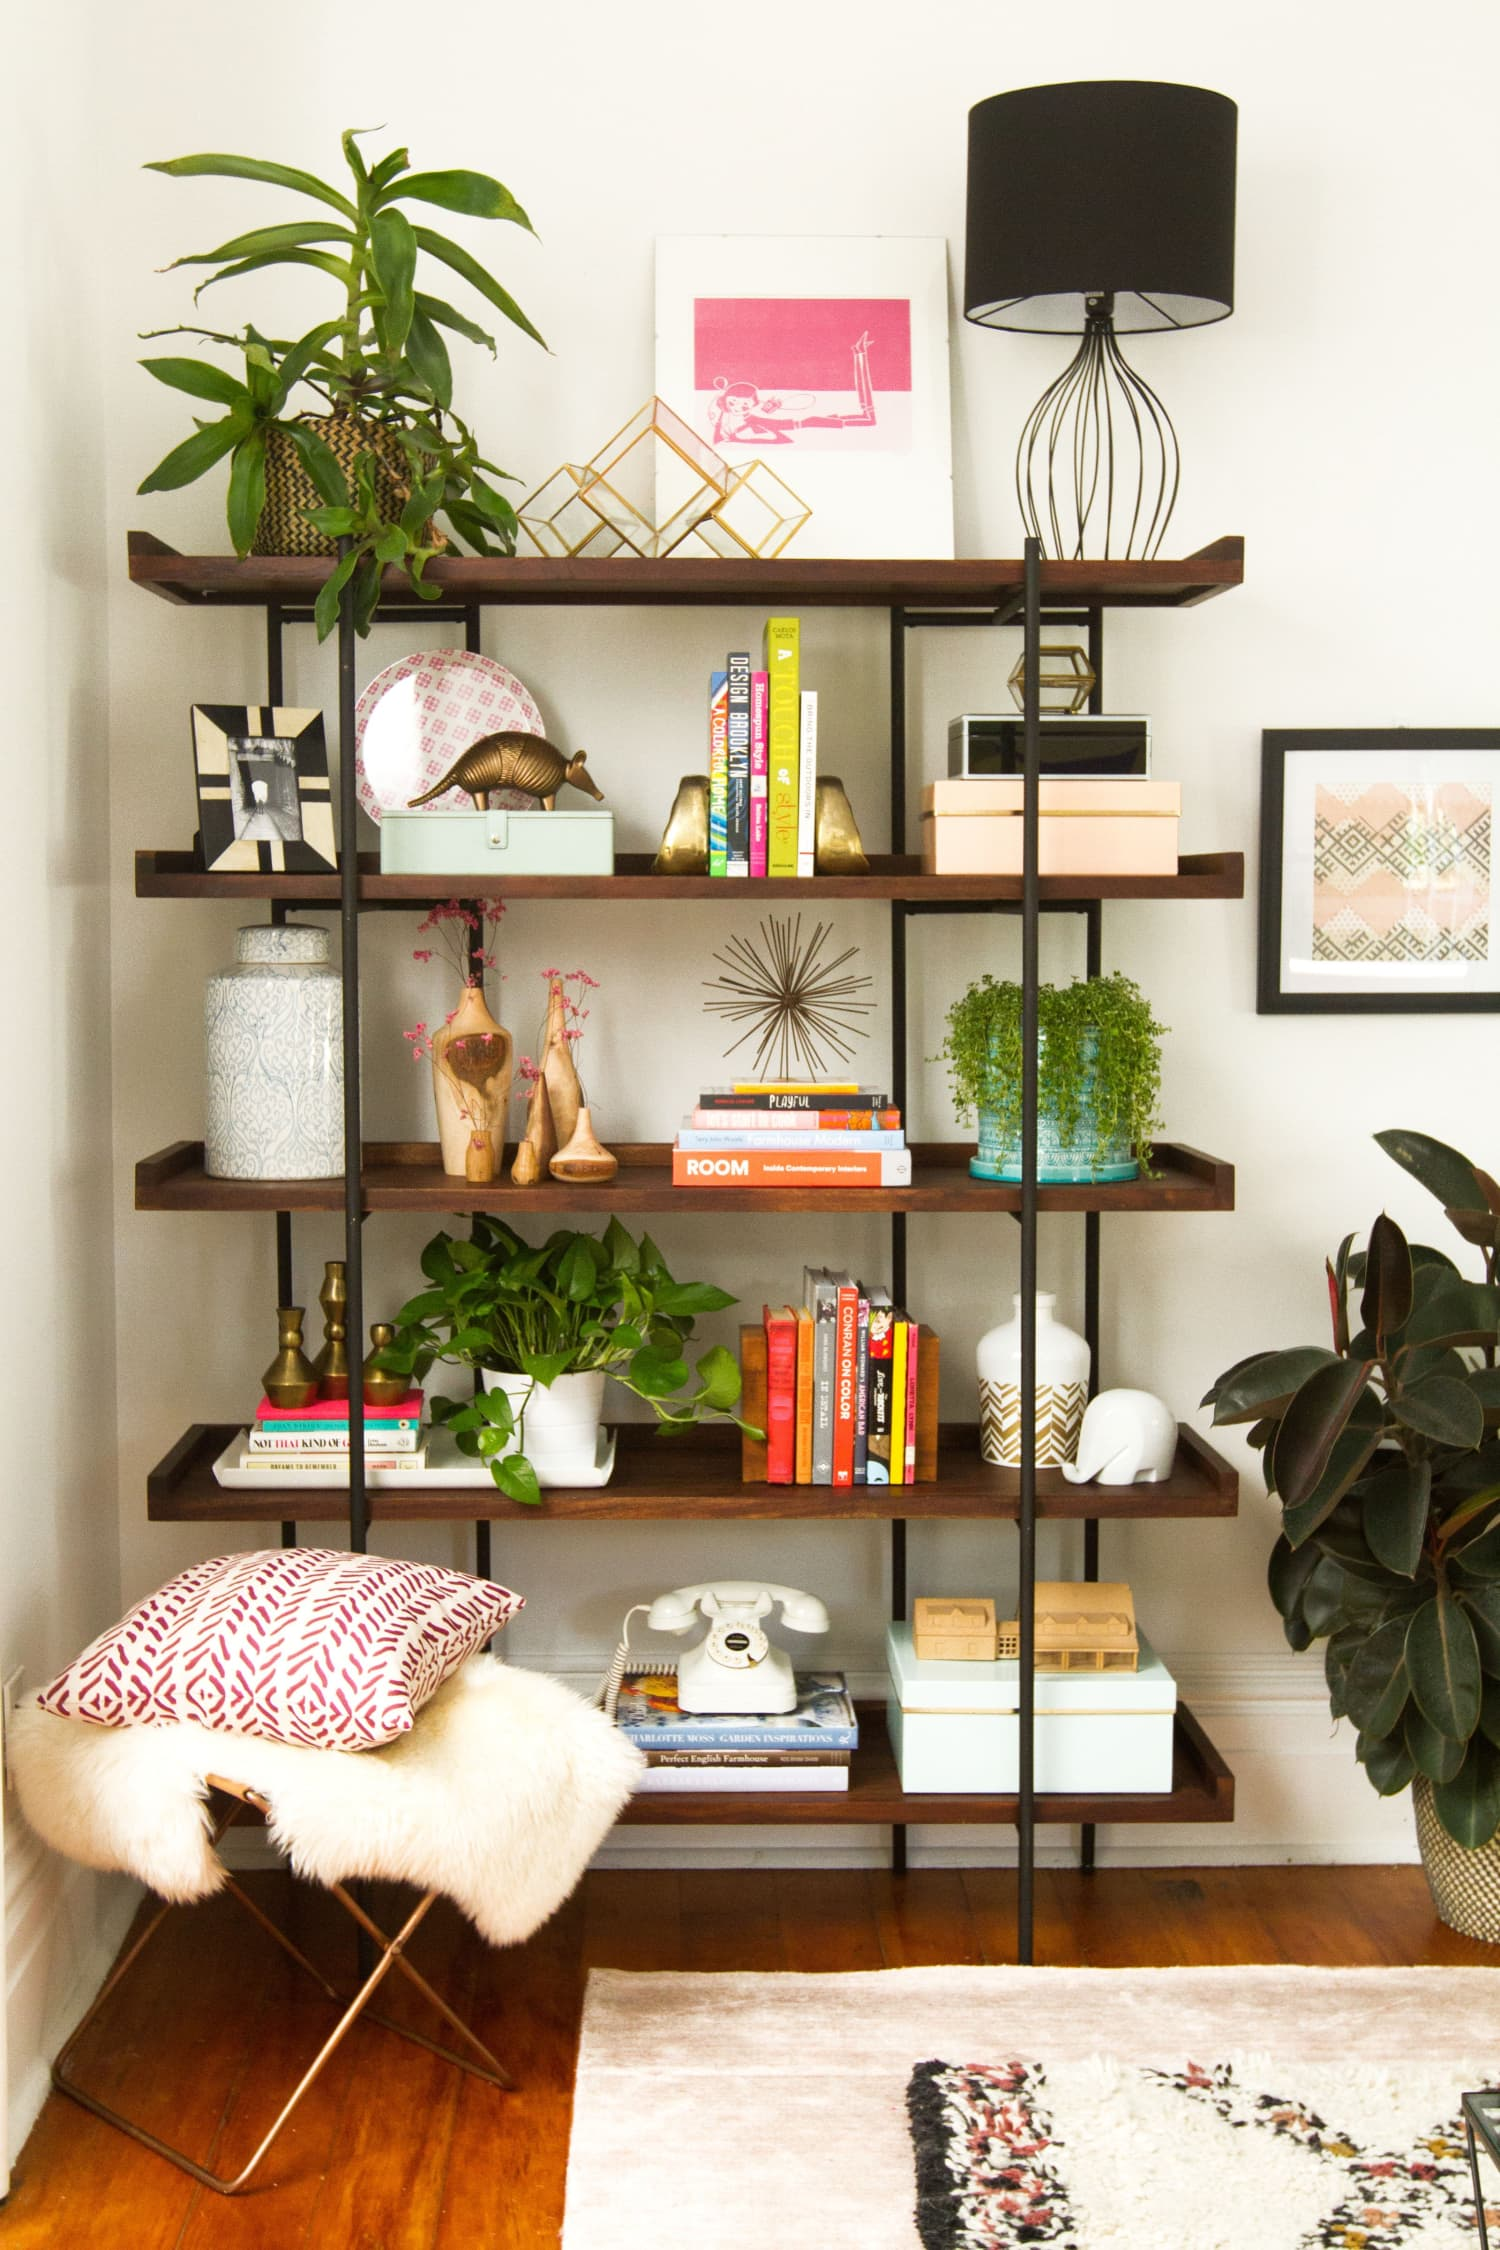 How to Style Bookshelves | Apartment Therapy